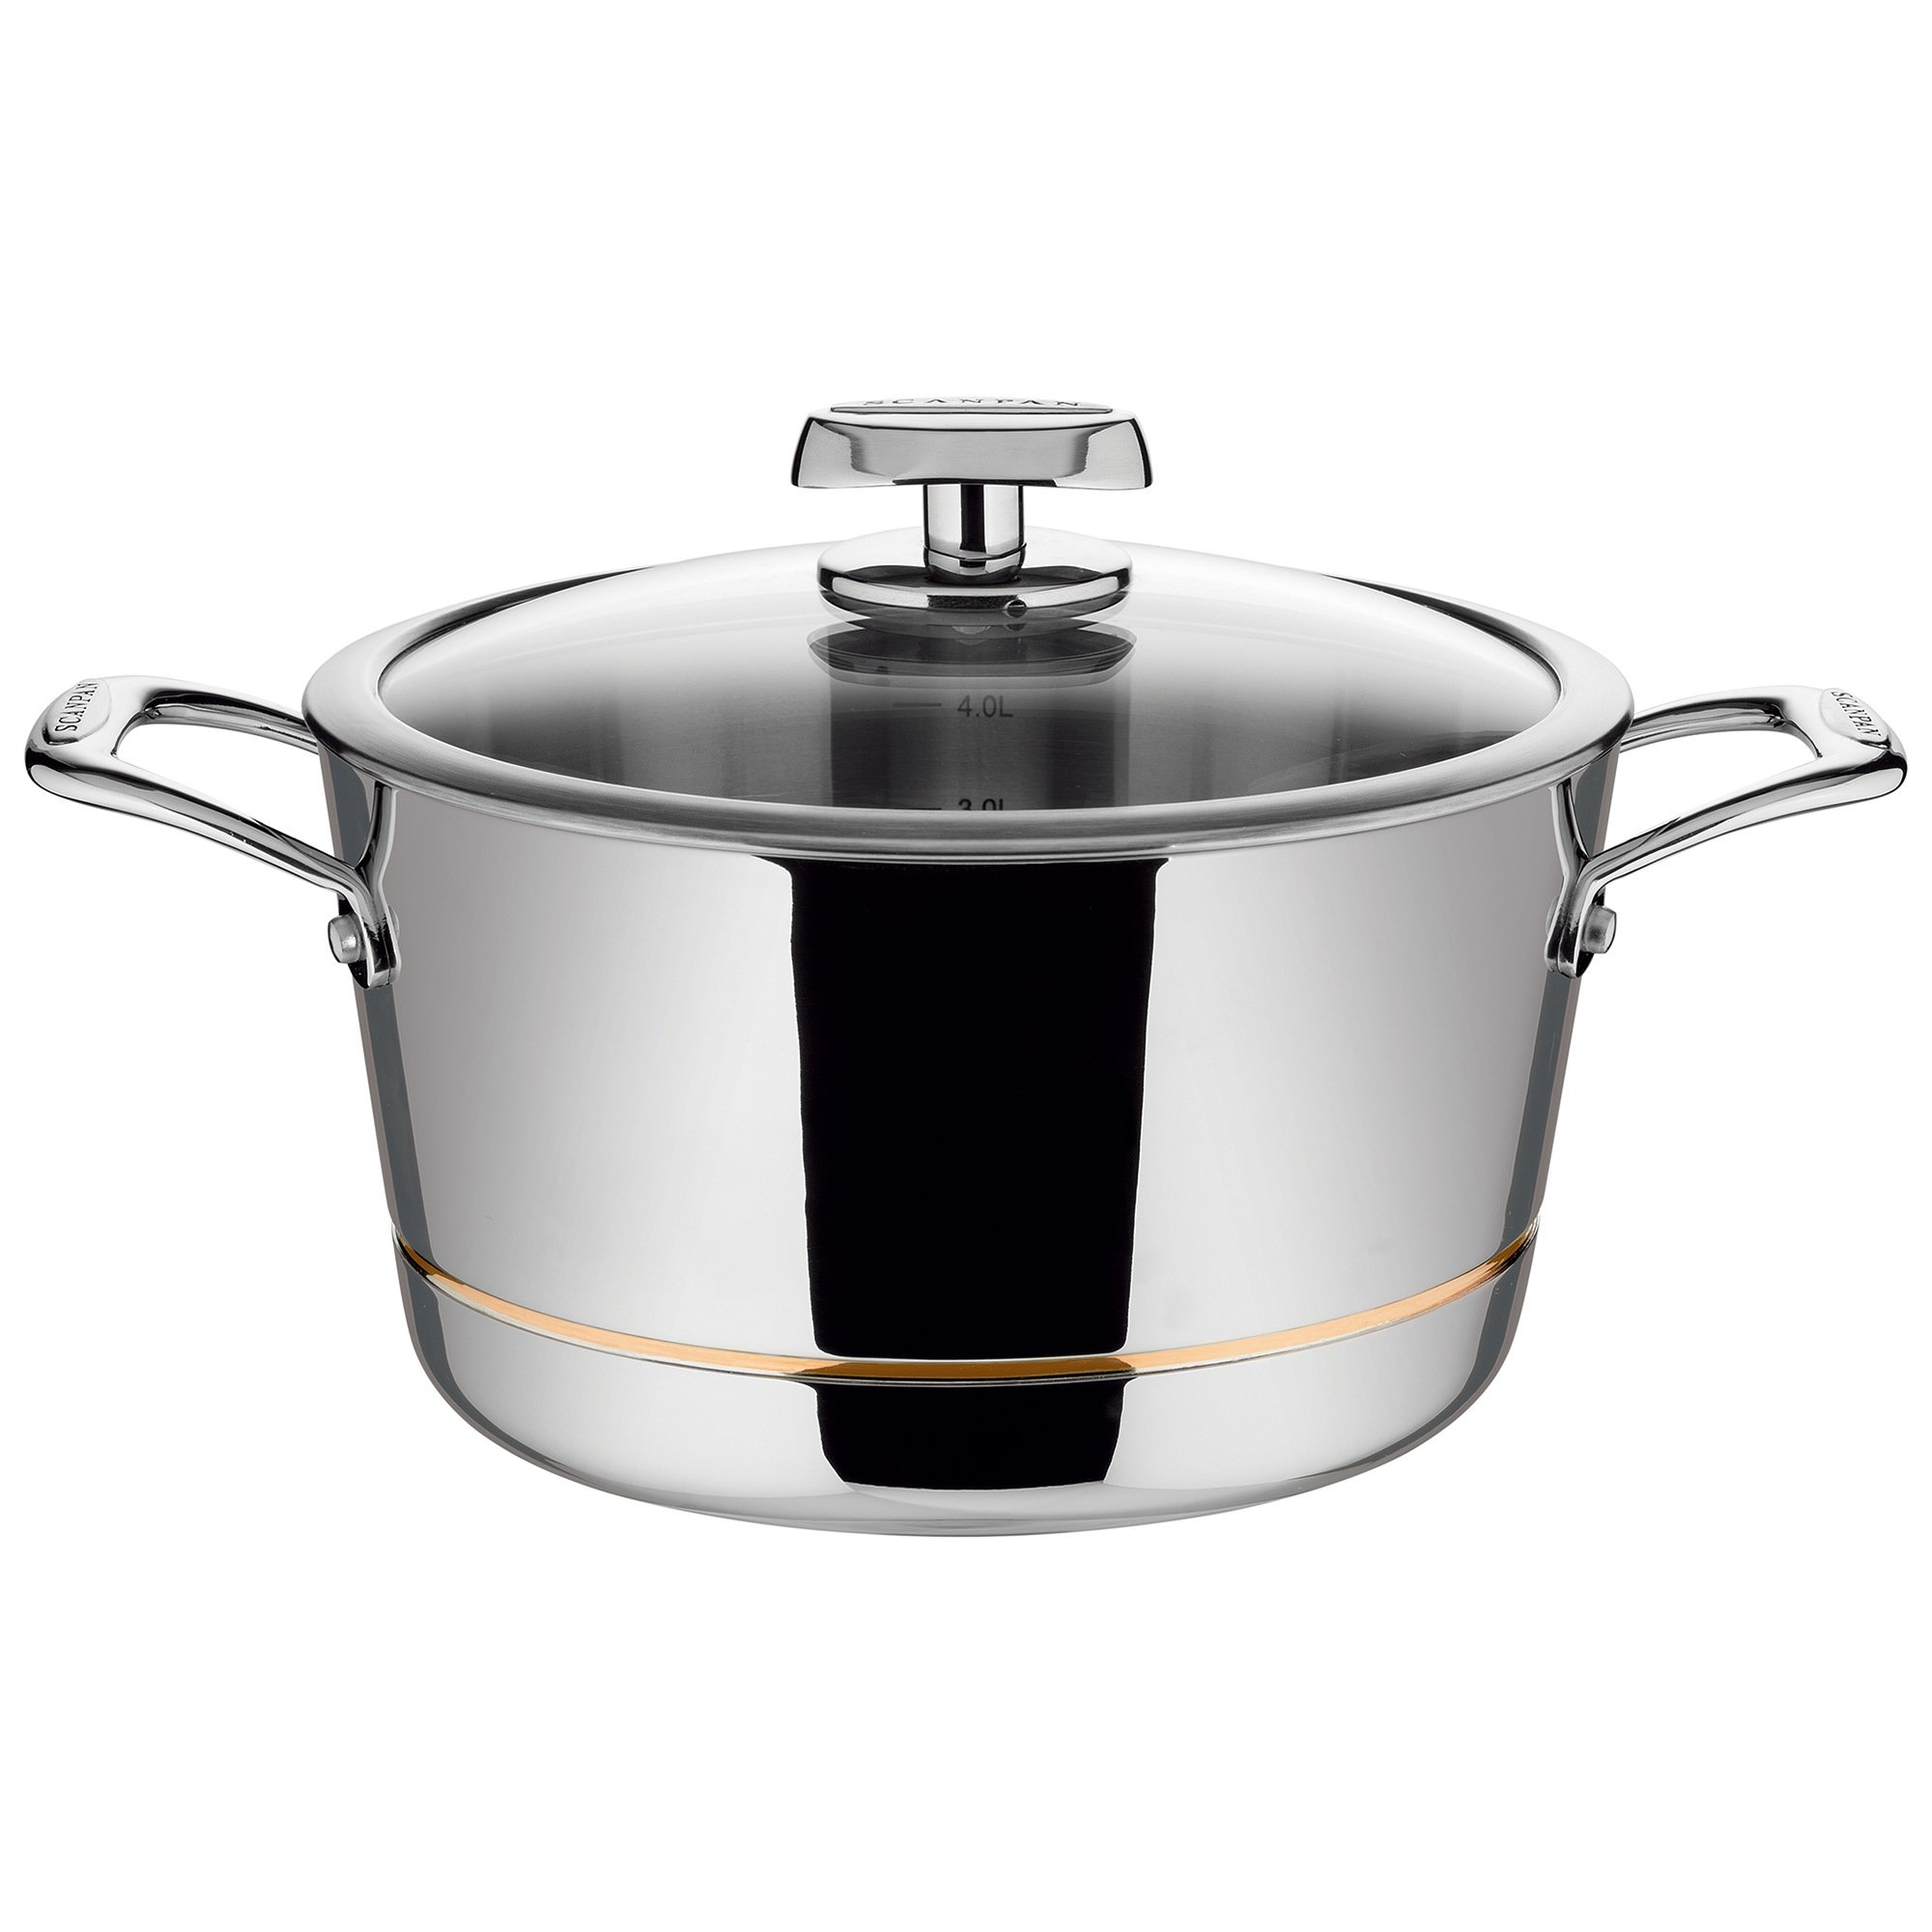 Scanpan Axis 24cm Dutch Oven with Lid